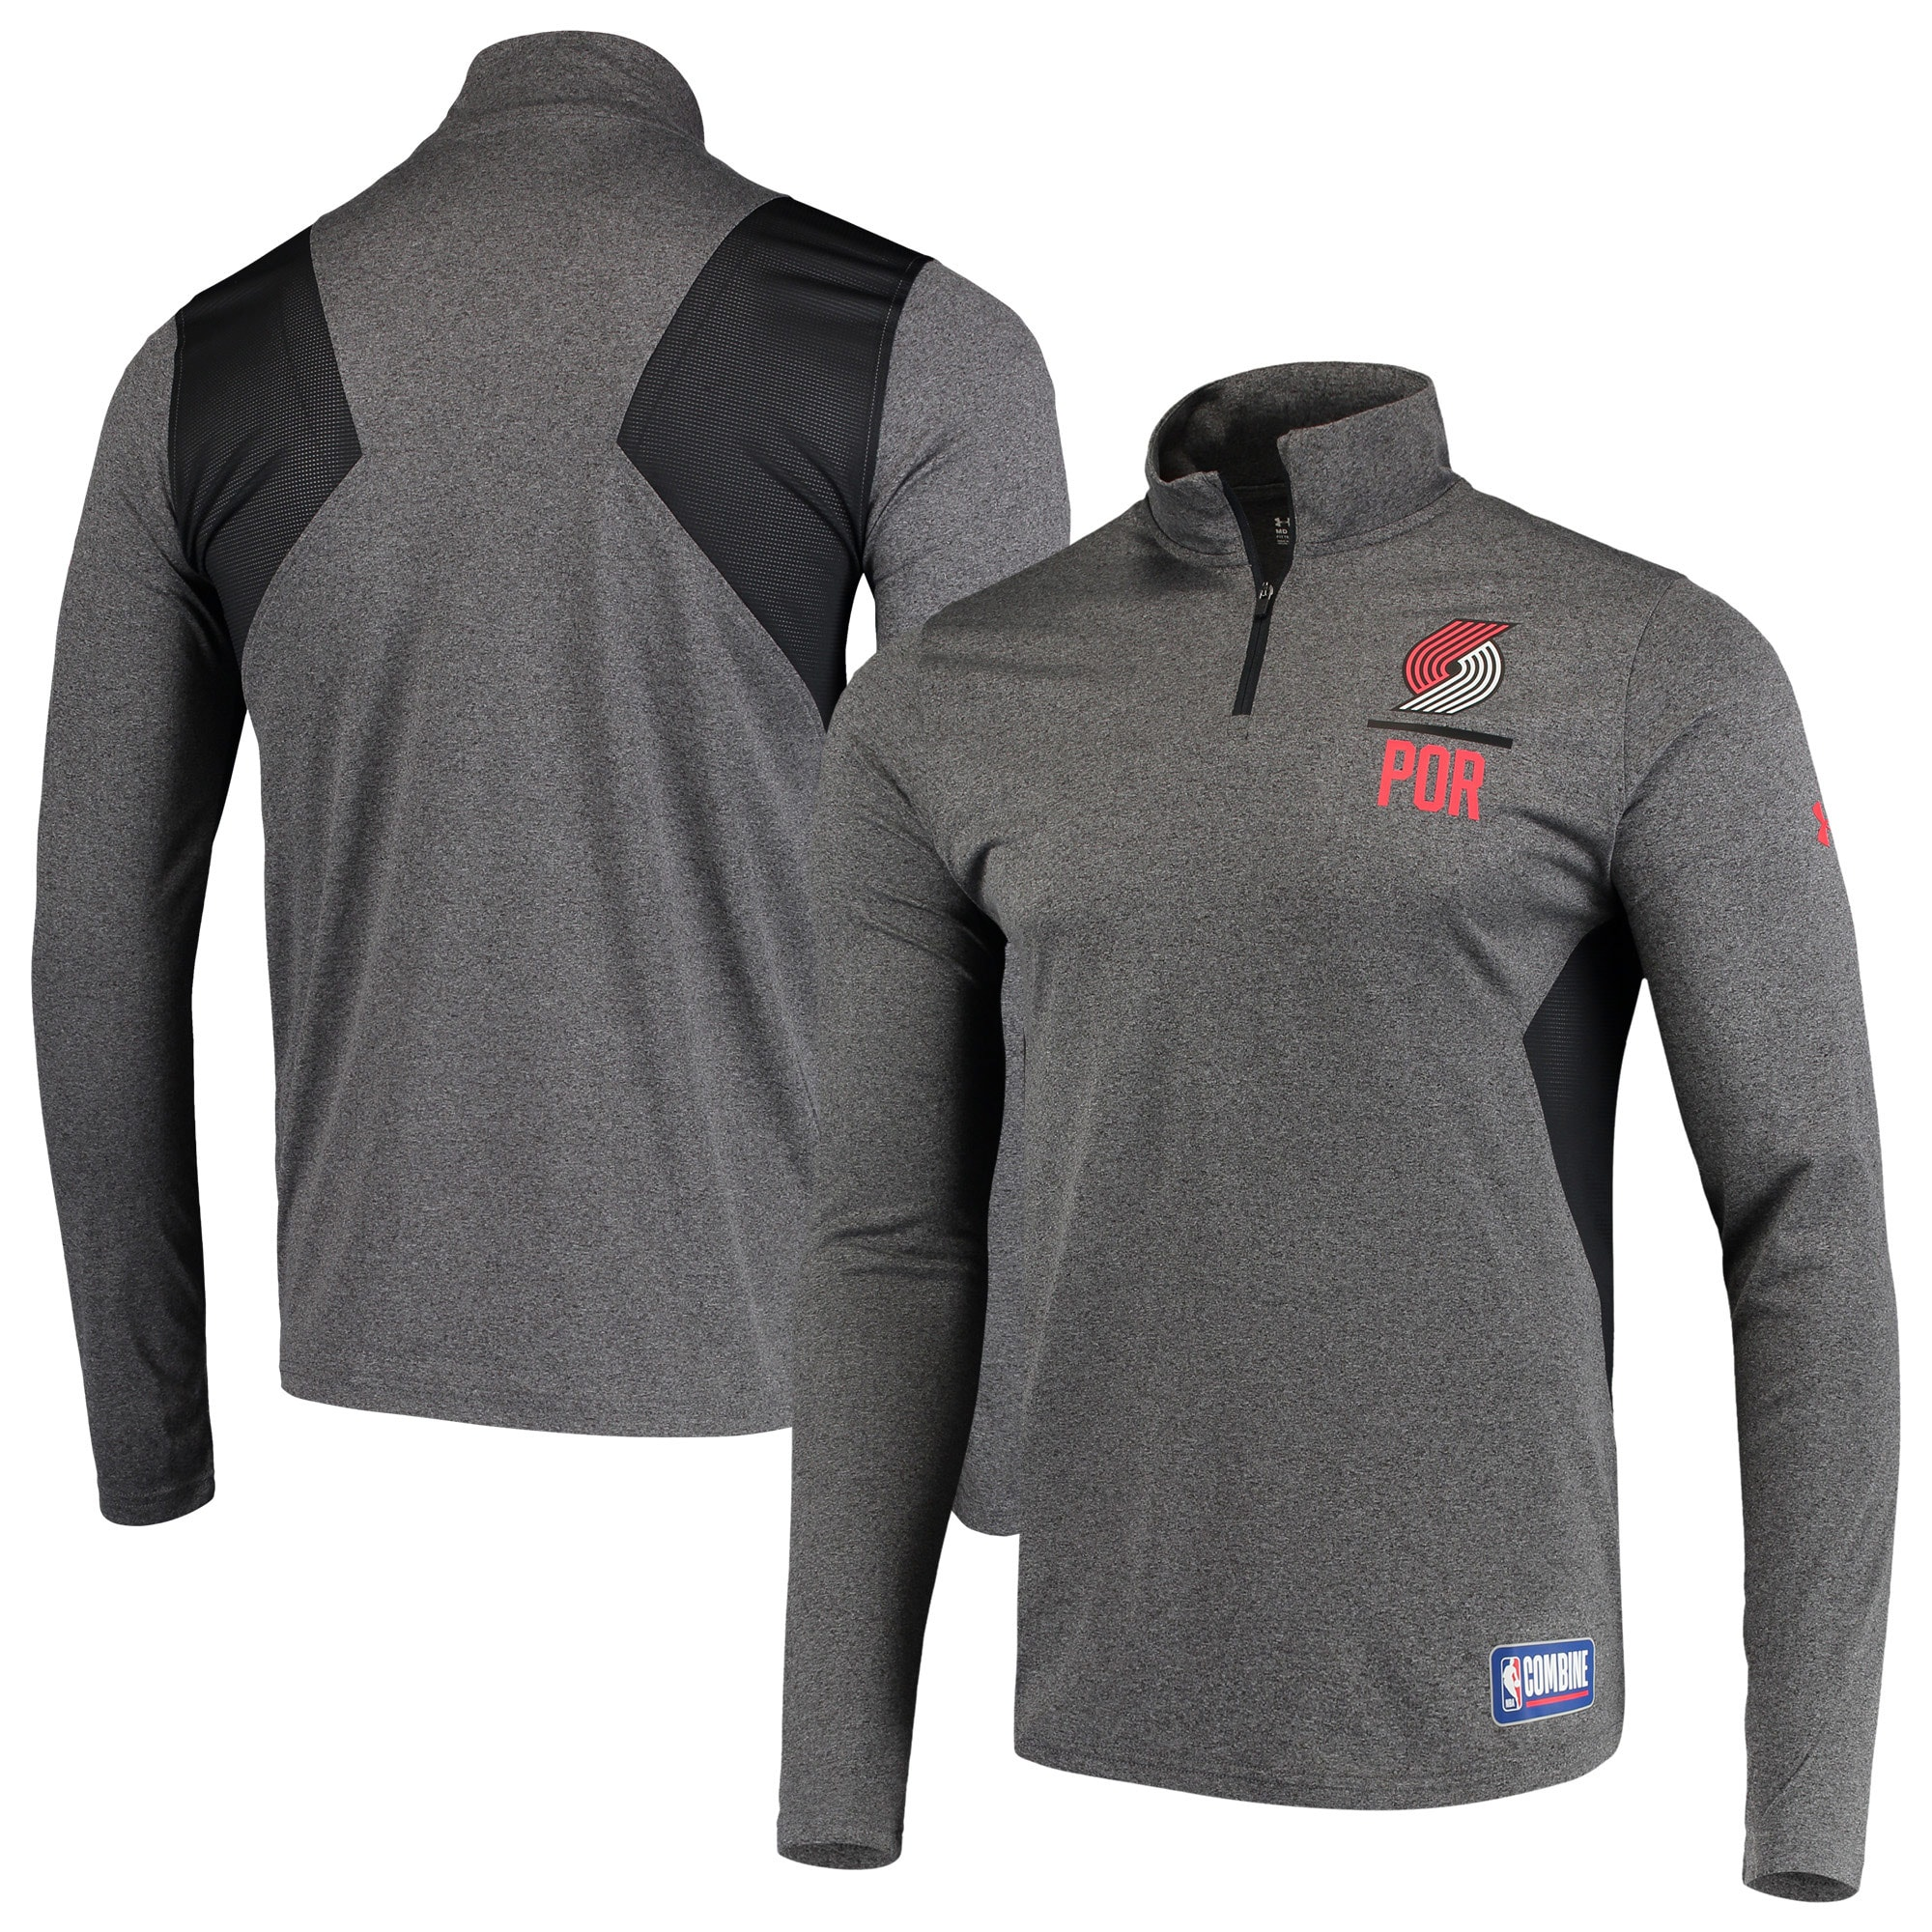 Portland Trail Blazers Under Armour Combine Authentic Season Tech Quarter-Zip Pullover Jacket - Heathered Charcoal